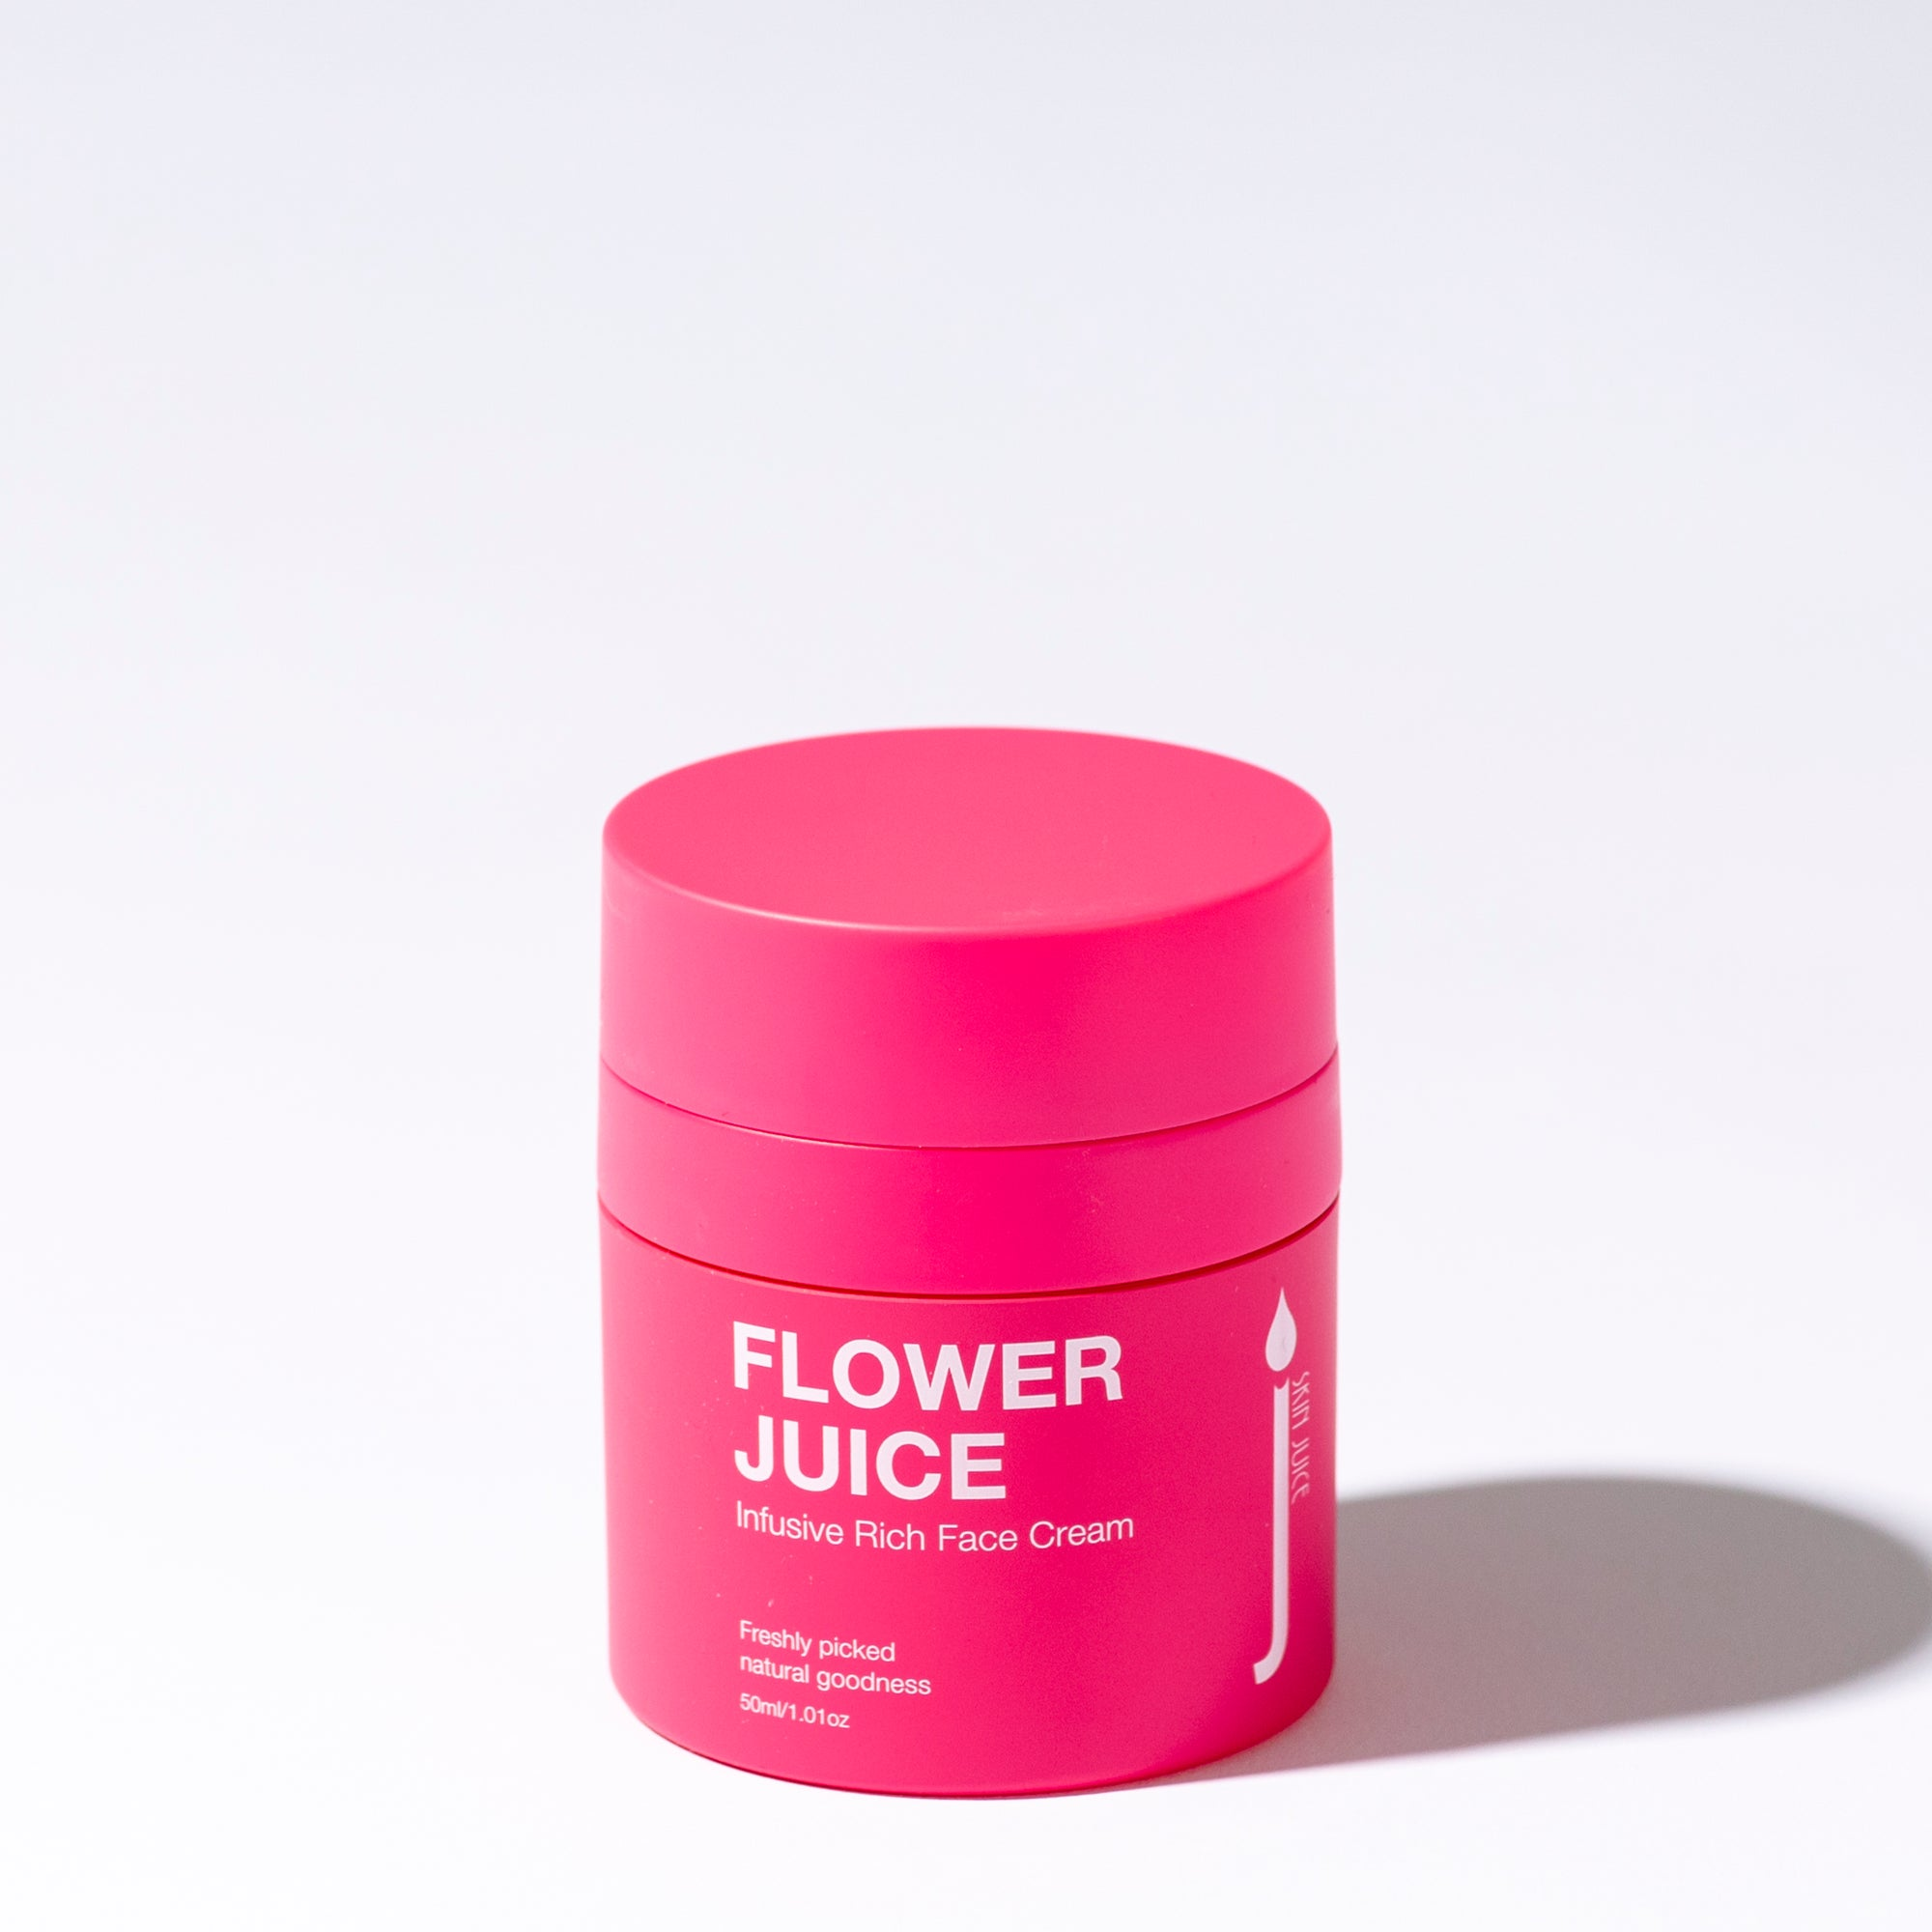 Skin Juice Flower Juice Anti-Ageing Moisturiser. Shop now at Skinbase Beauty. Afterpay and free shipping over $55